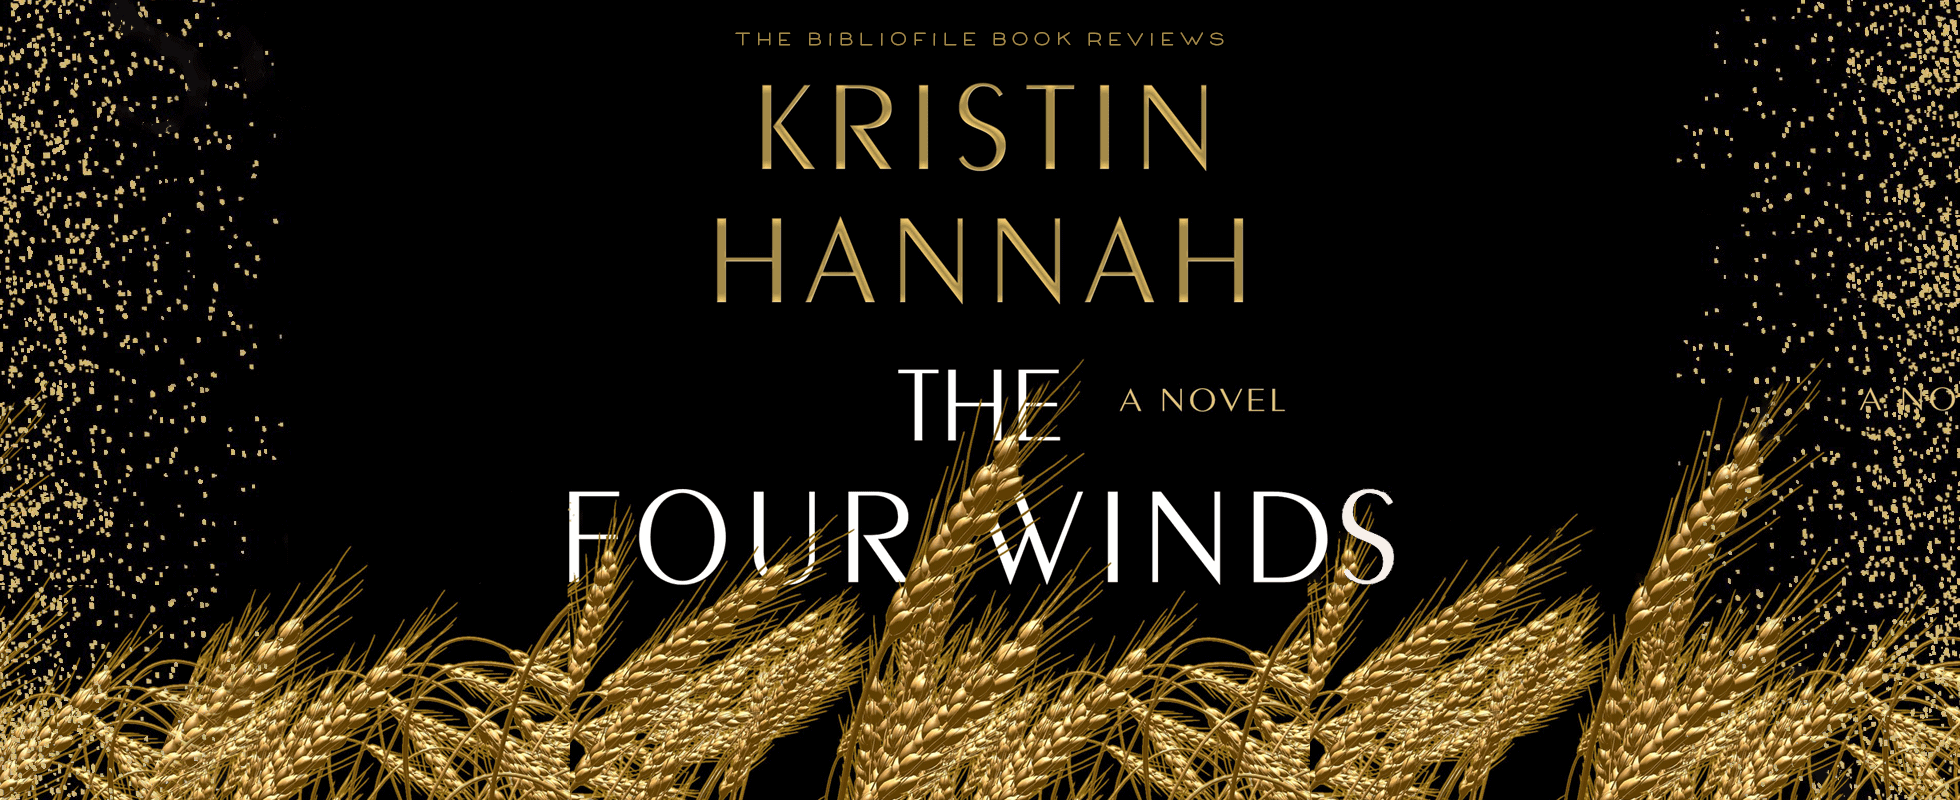 the four winds by kristin hannah summary recap review synopsis spoilers